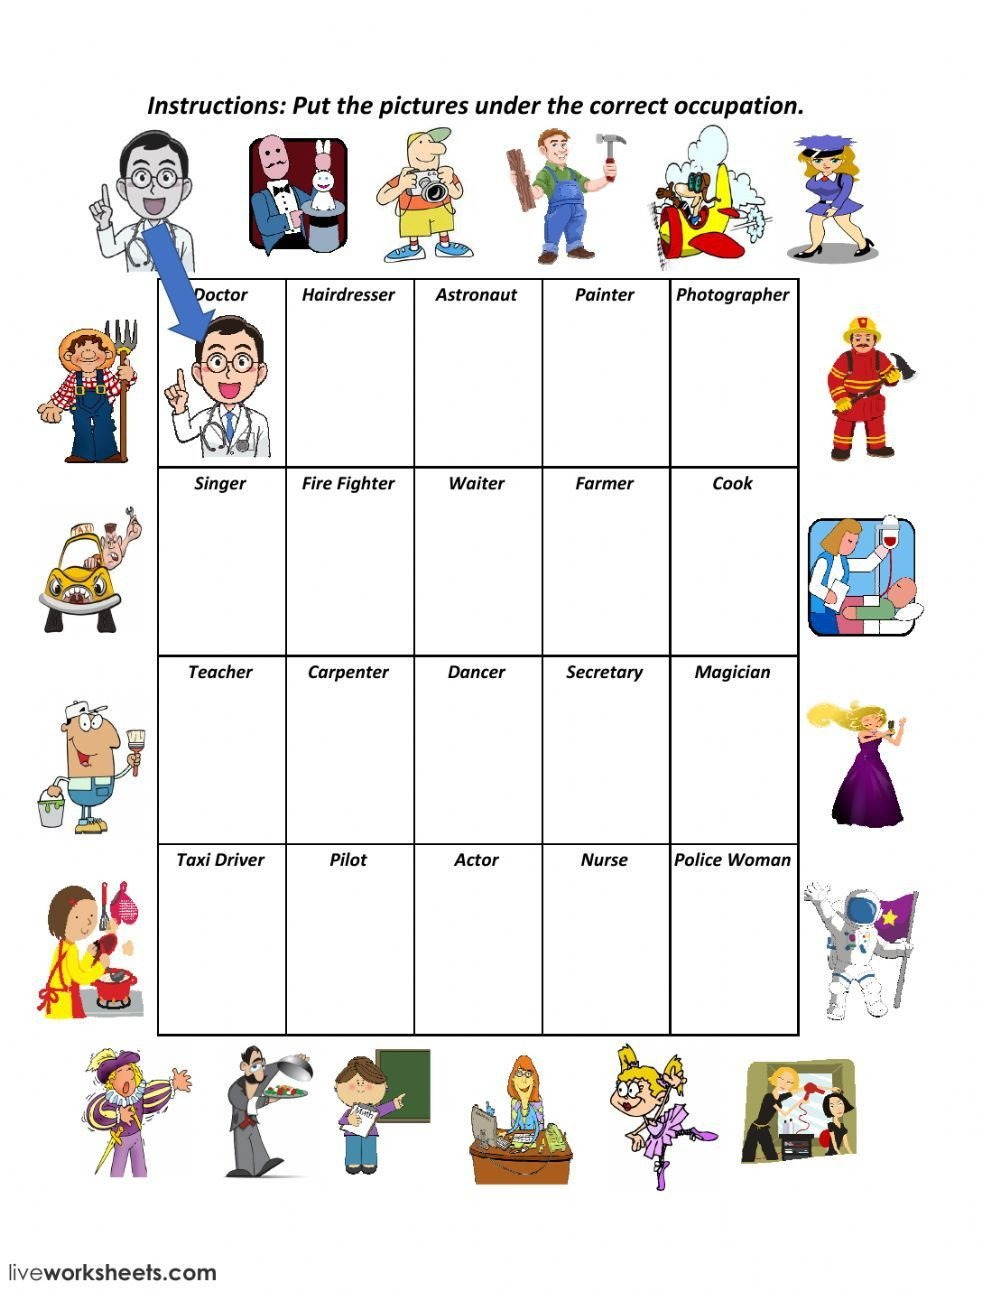 Occupation Worksheets for Kindergarten Jobs and Occupations Online Worksheet You Can Do the